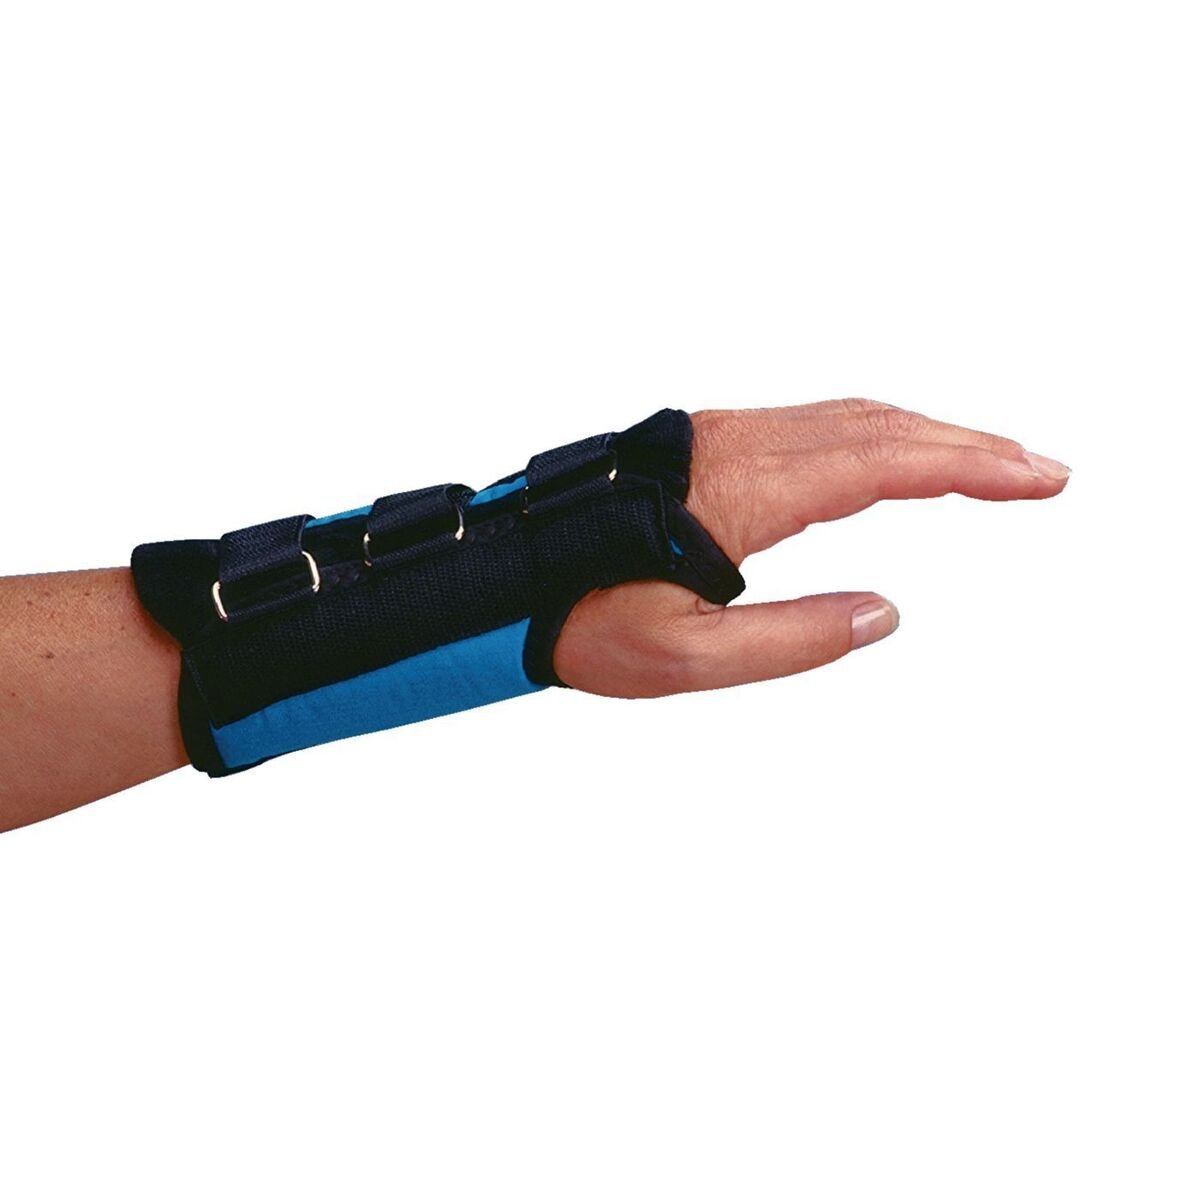 """Rolyan D-Ring Right Wrist Brace, Size Large Fits Wrists 7.75""""-8.5"""", 7.5"""" Regular Length Support, Teal Brace with Straps and D-Ring Connectors to Secure and Stabilize Hands and Wrists"""